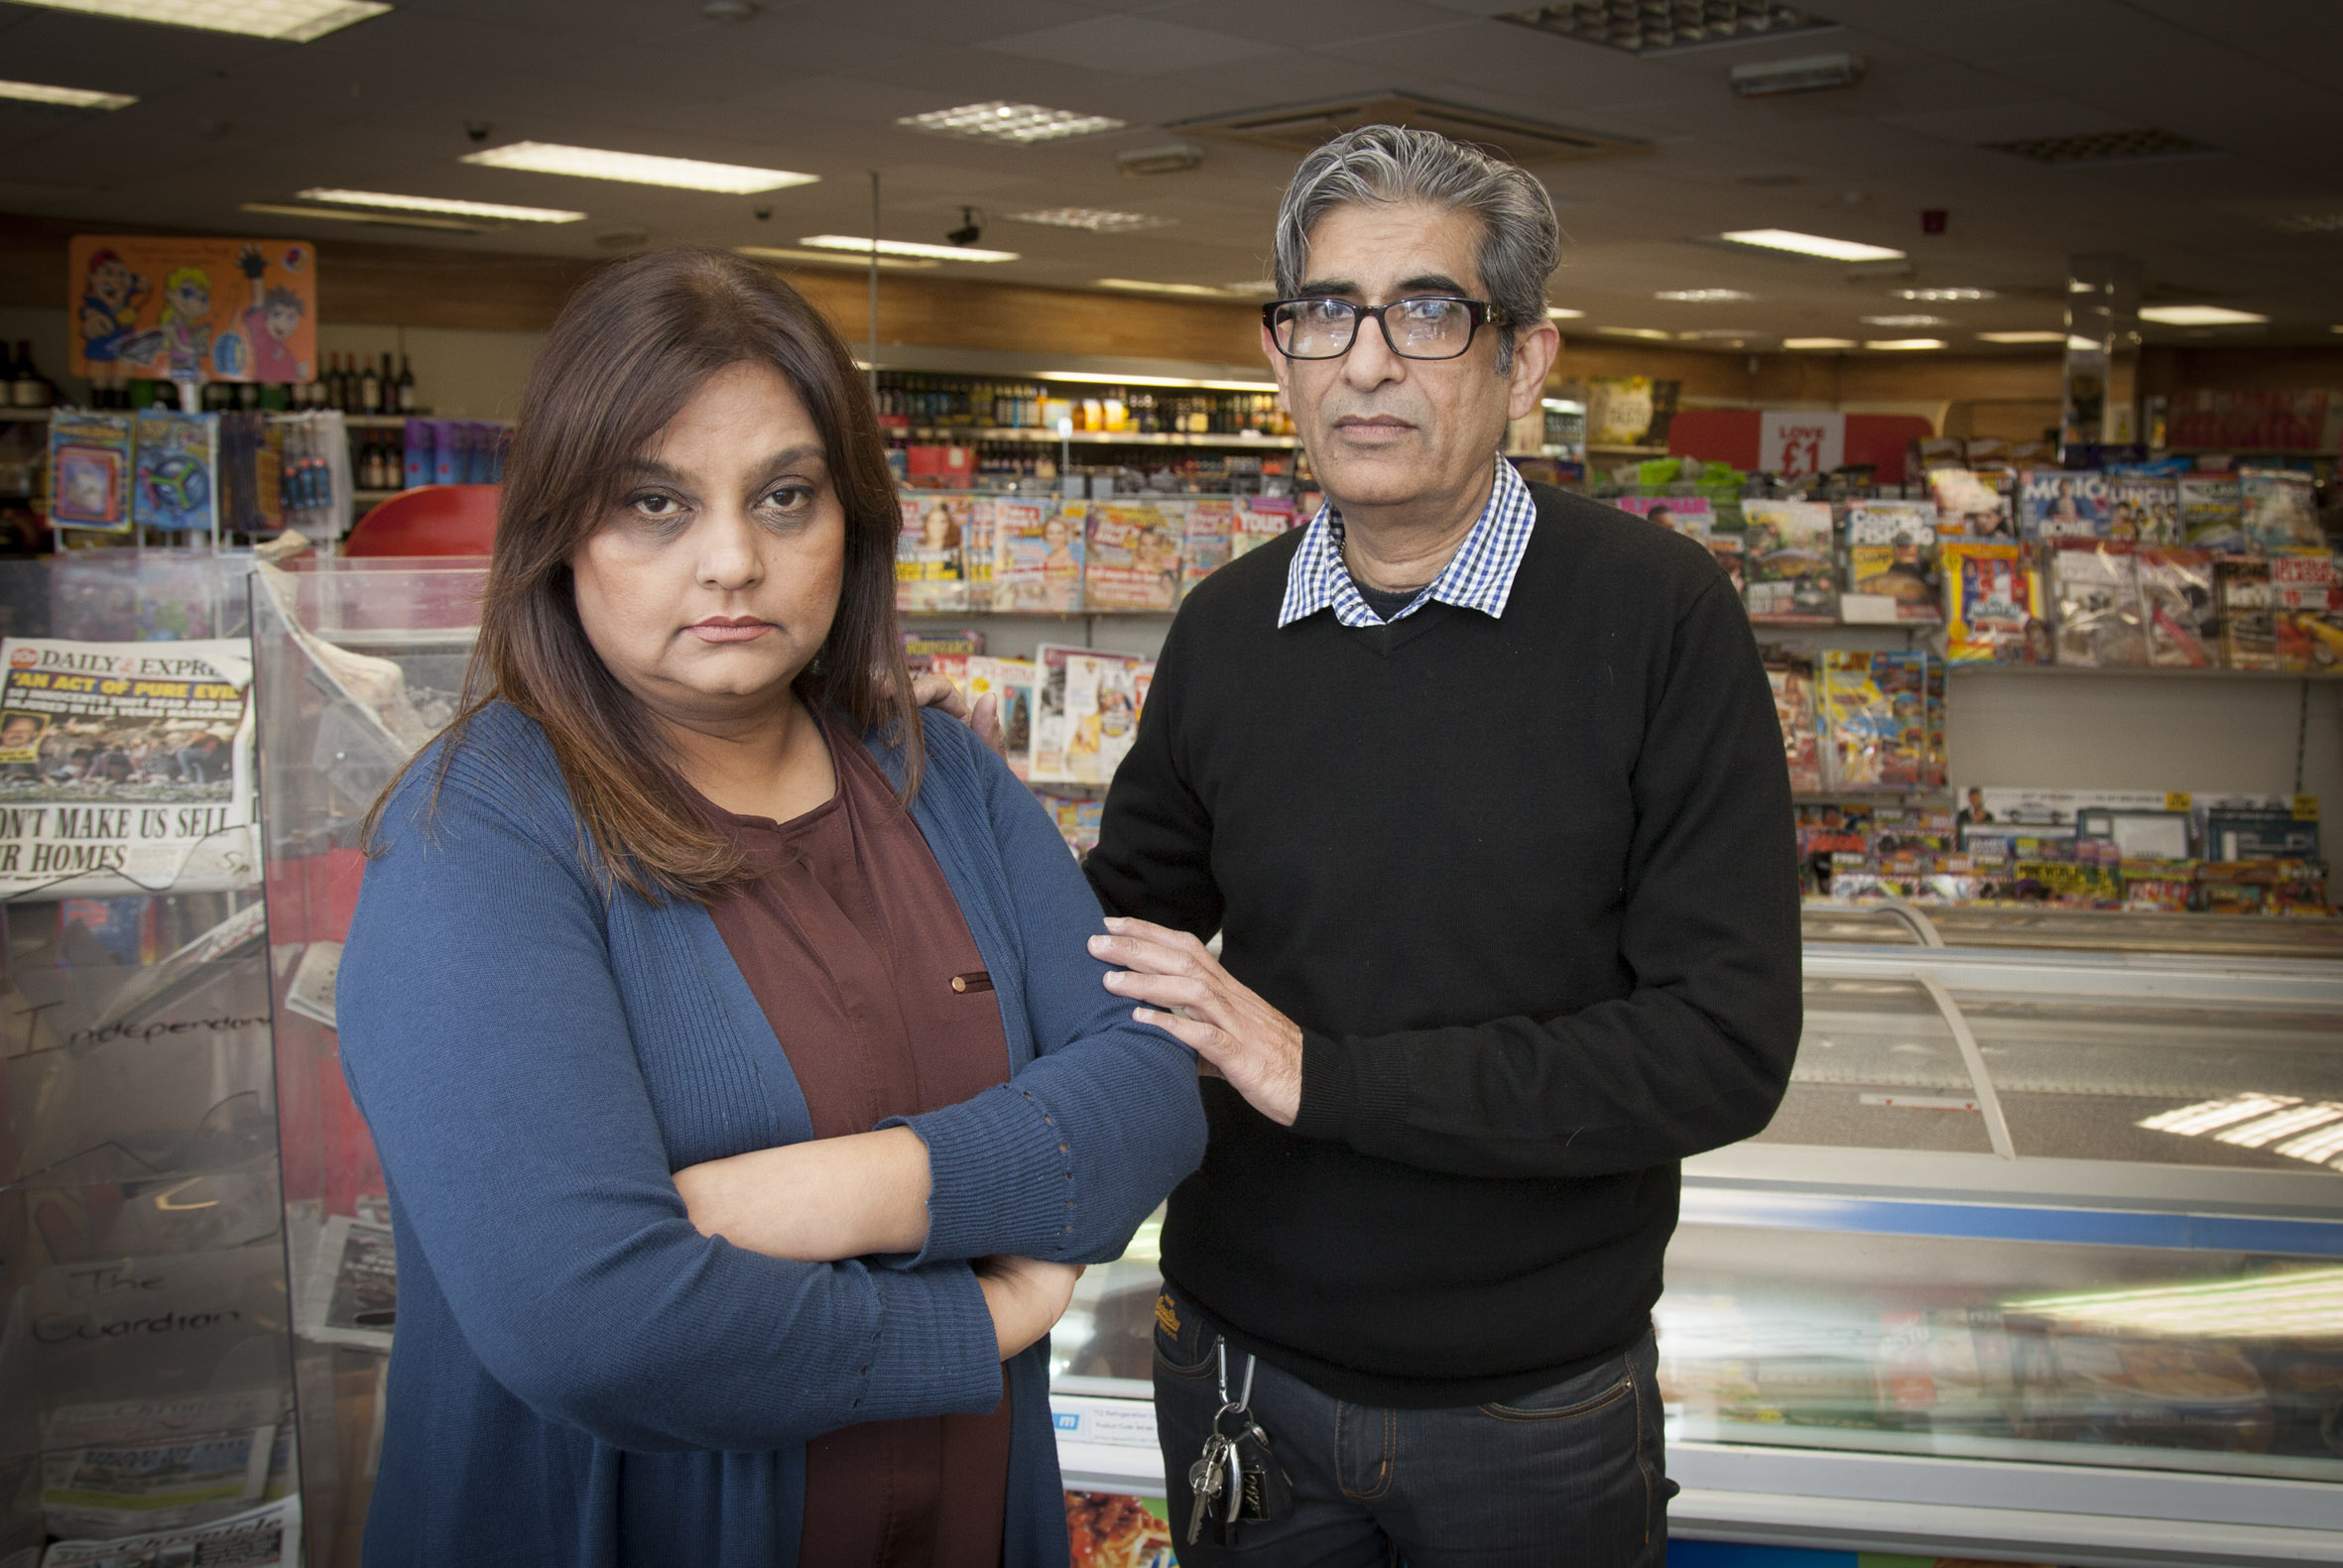 Racially abused store boss speaks out to combat hate crime in North Wales